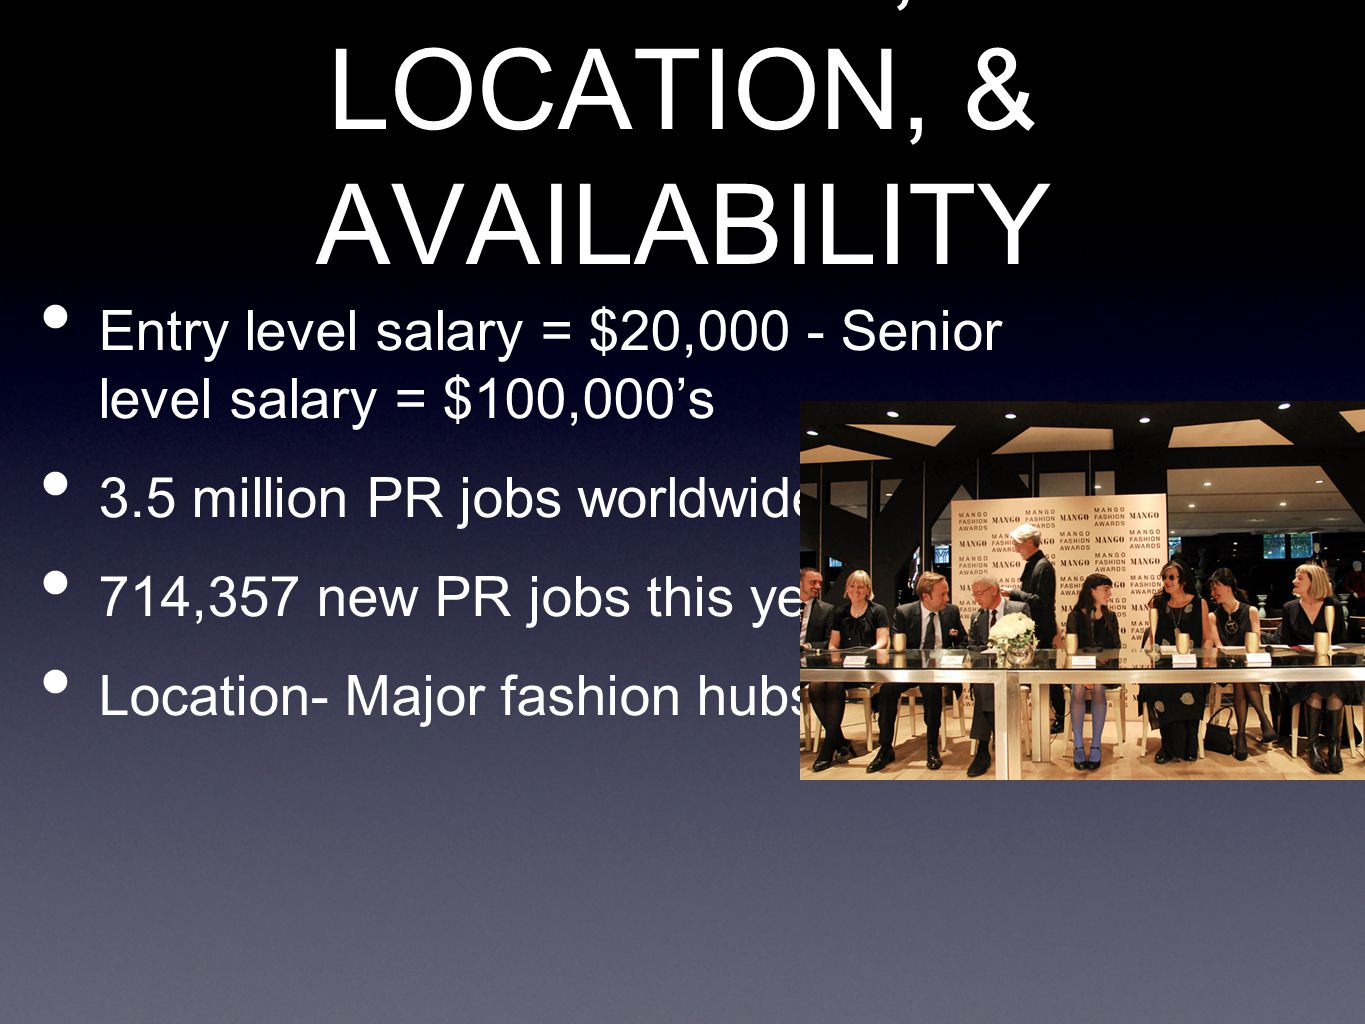 SALARY, LOCATION, & AVAILABILITY Entry level salary = $20,000 - Senior level salary = $100,000's 3.5 million PR jobs worldwide 714,357 new PR jobs this year Location- Major fashion hubs